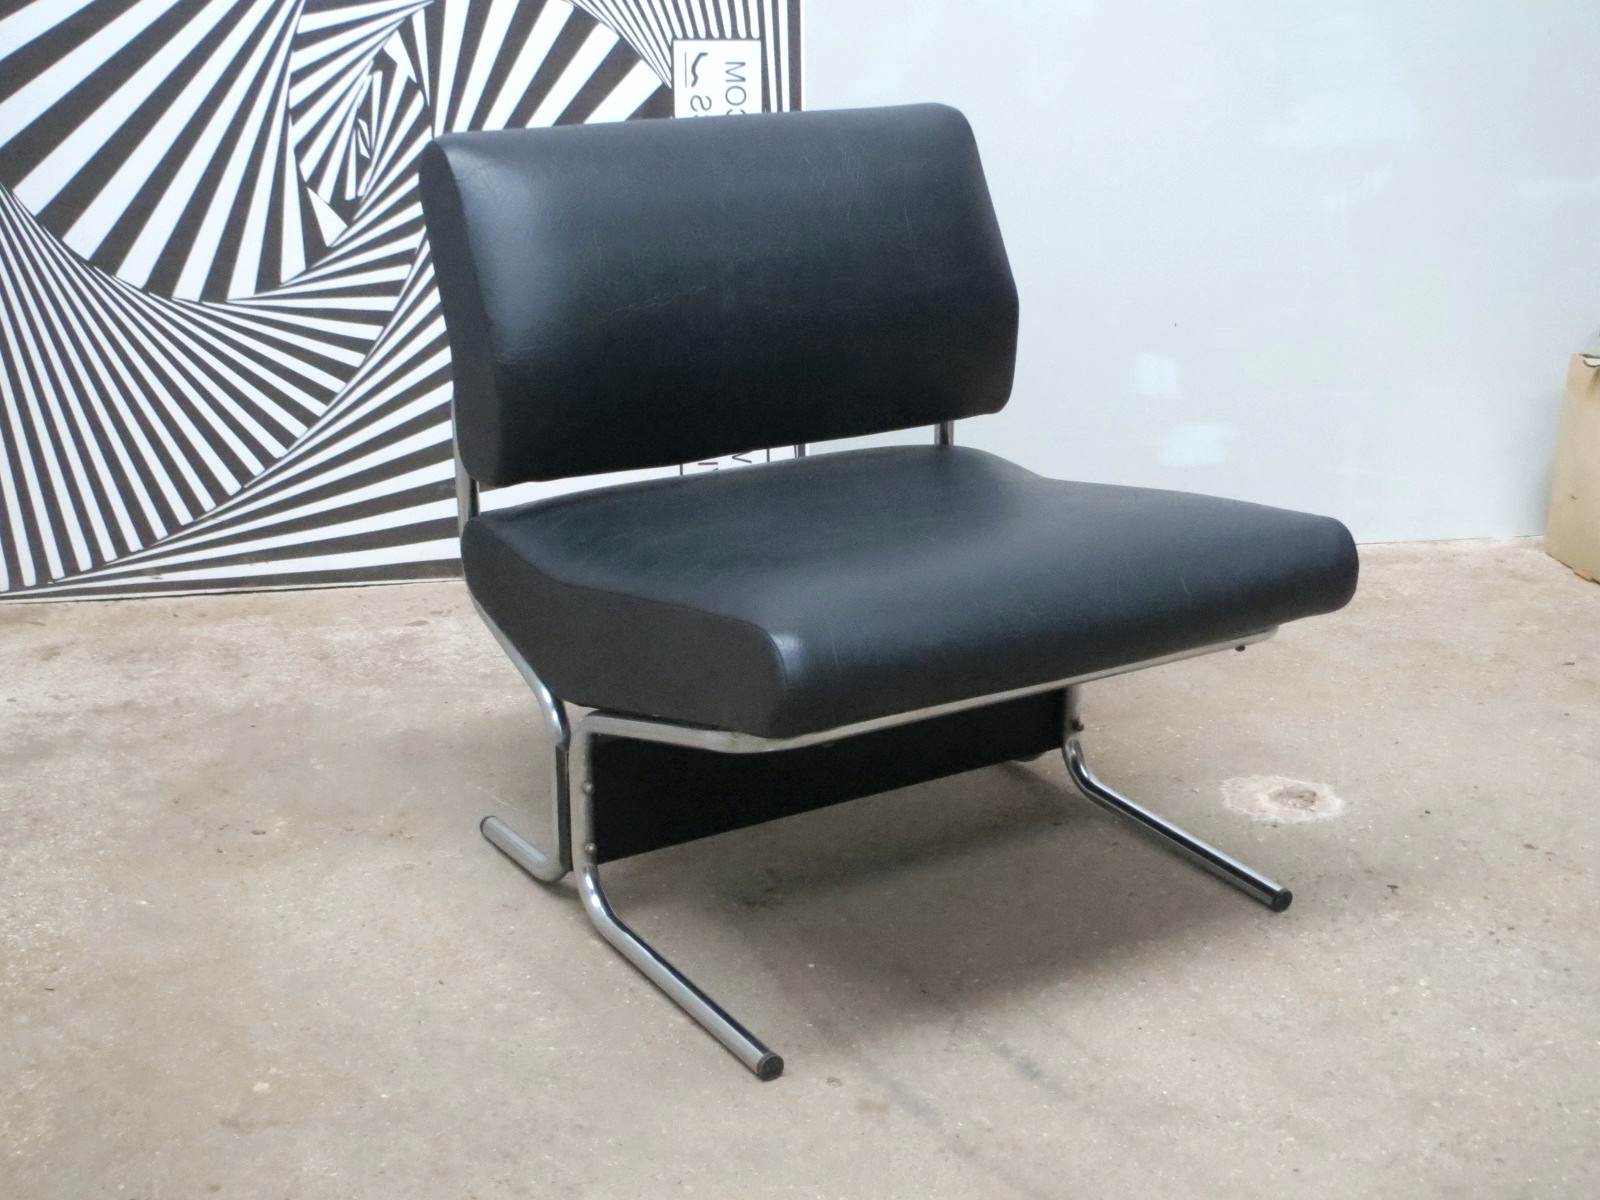 2018 Chaise Lounge Computer Chairs With Regard To Chaise Lounge Computer Chair • Lounge Chairs Ideas (View 4 of 15)